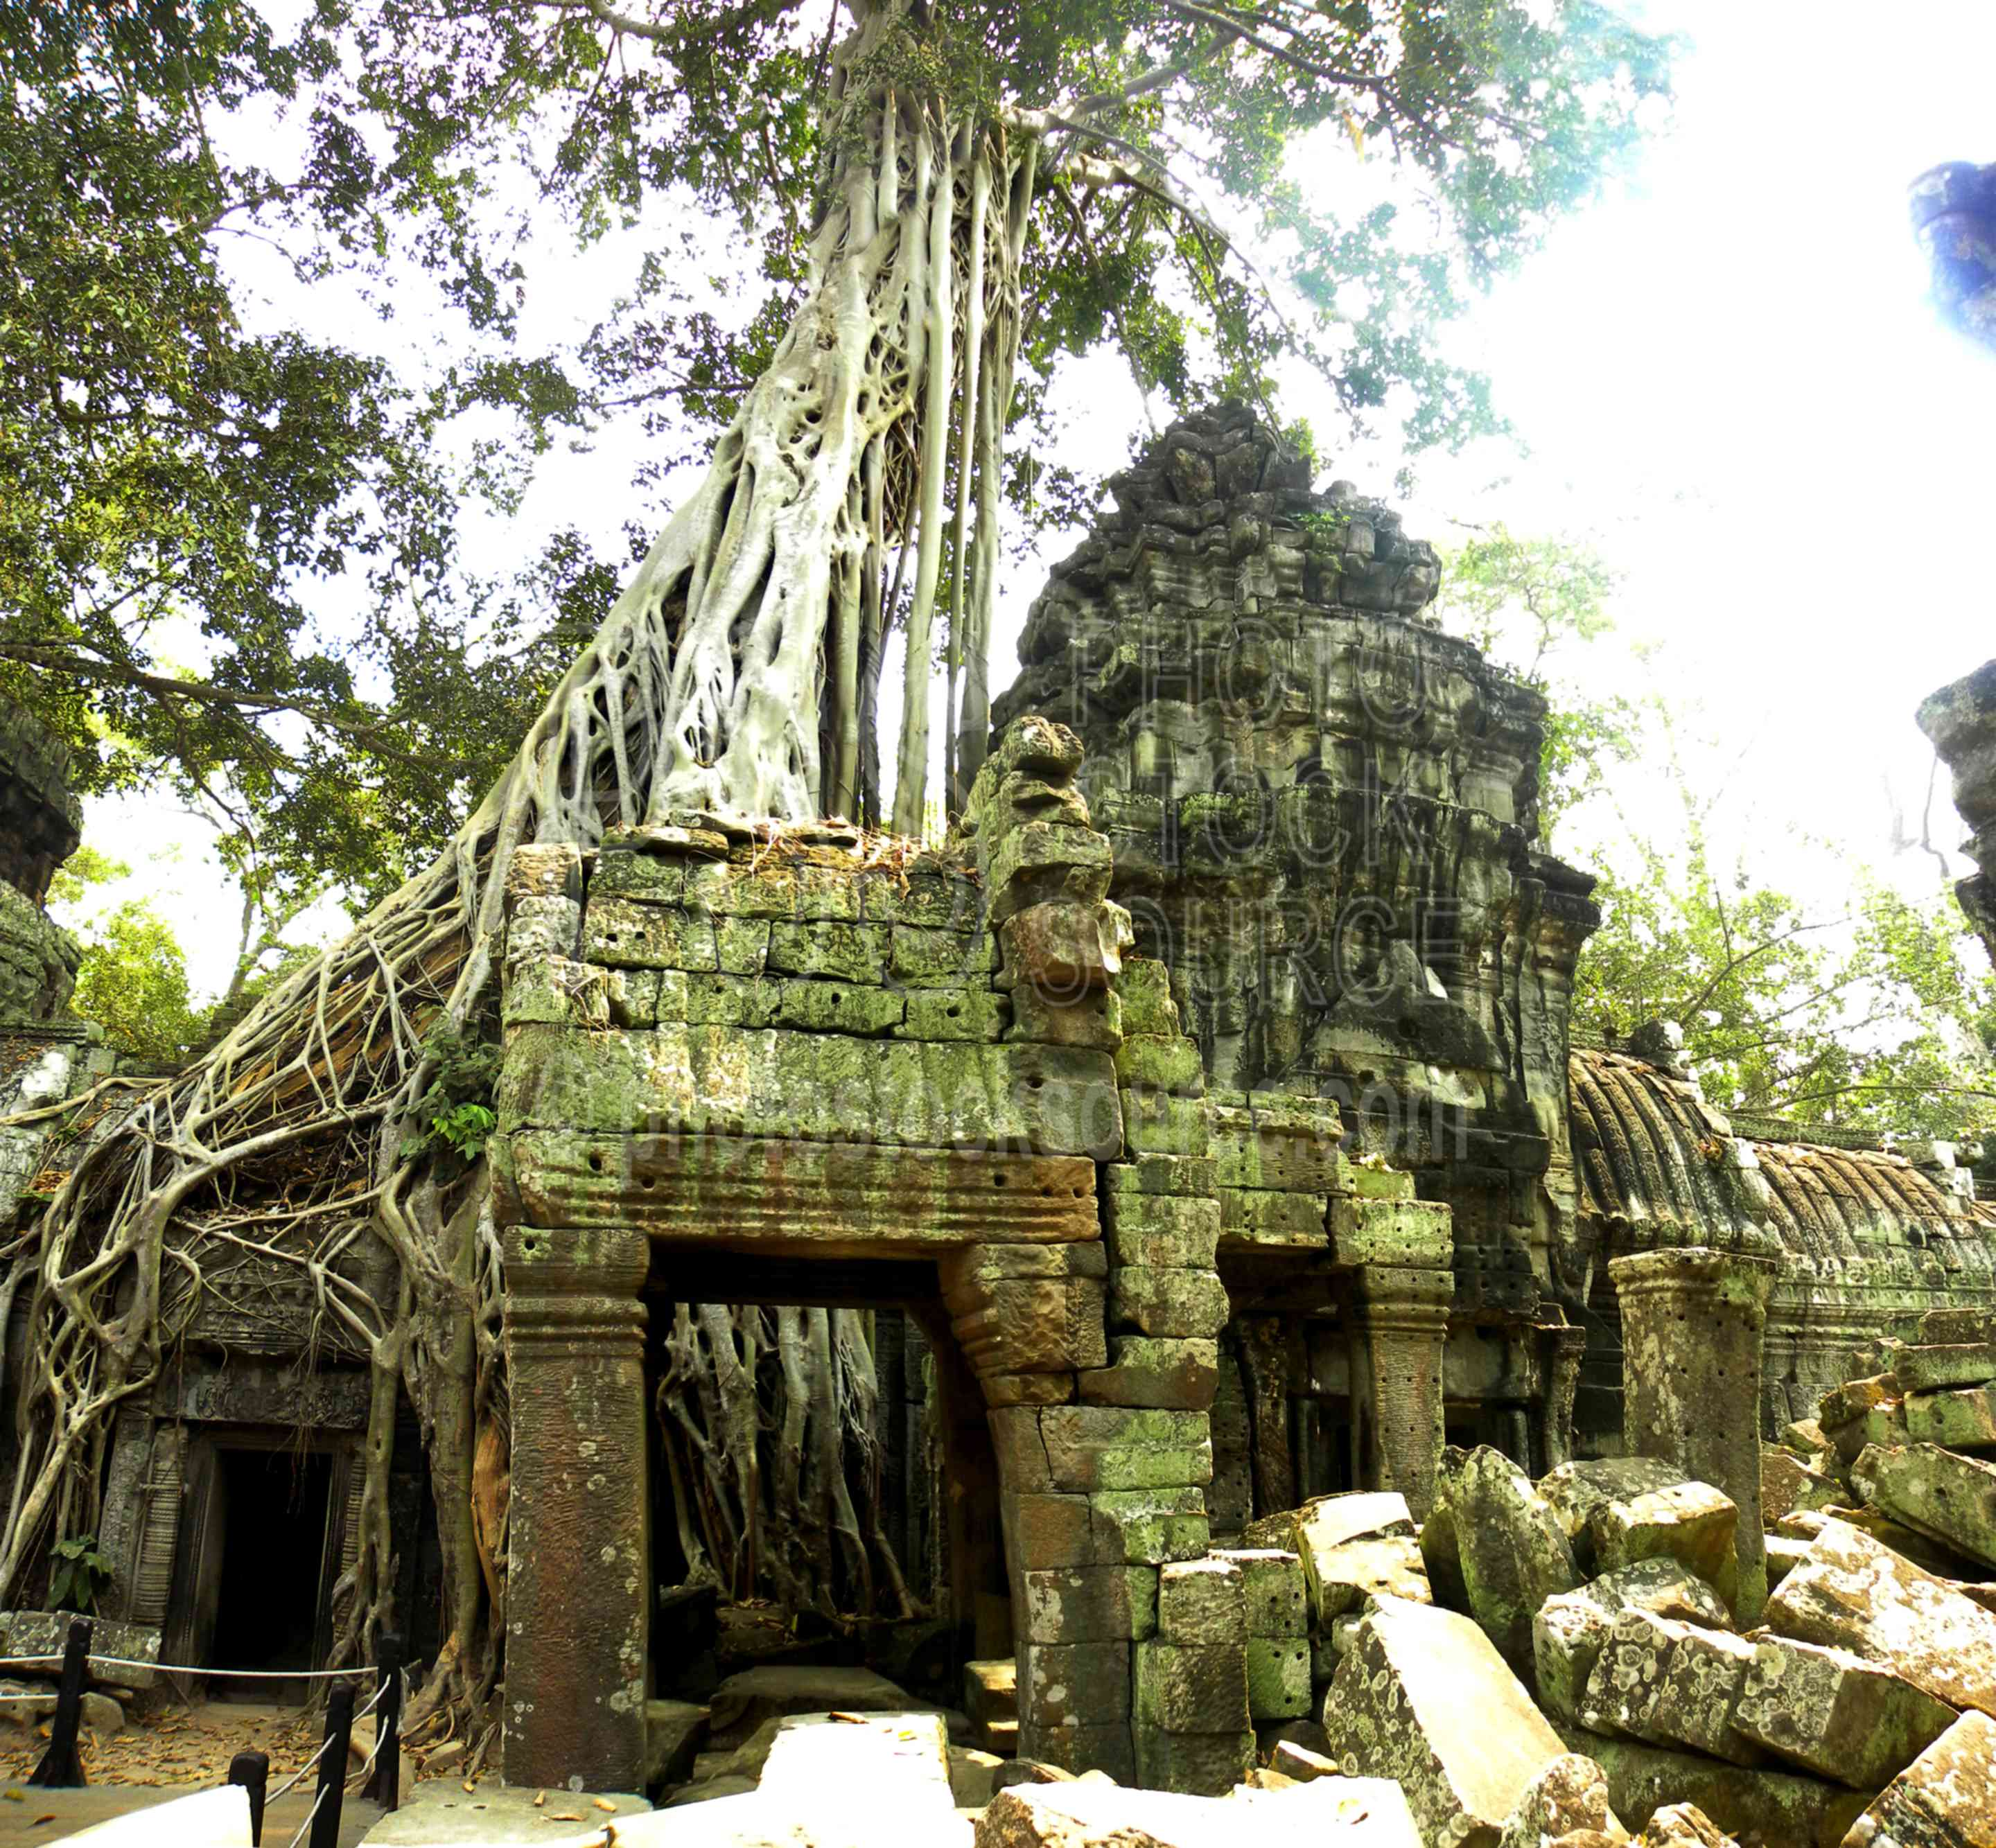 Ta Prohm Tree Roots,ruin,ancient,historical,khmer,fig,strangler fig,ficus gibbosa,roots,tomb raider,tomb raider temple